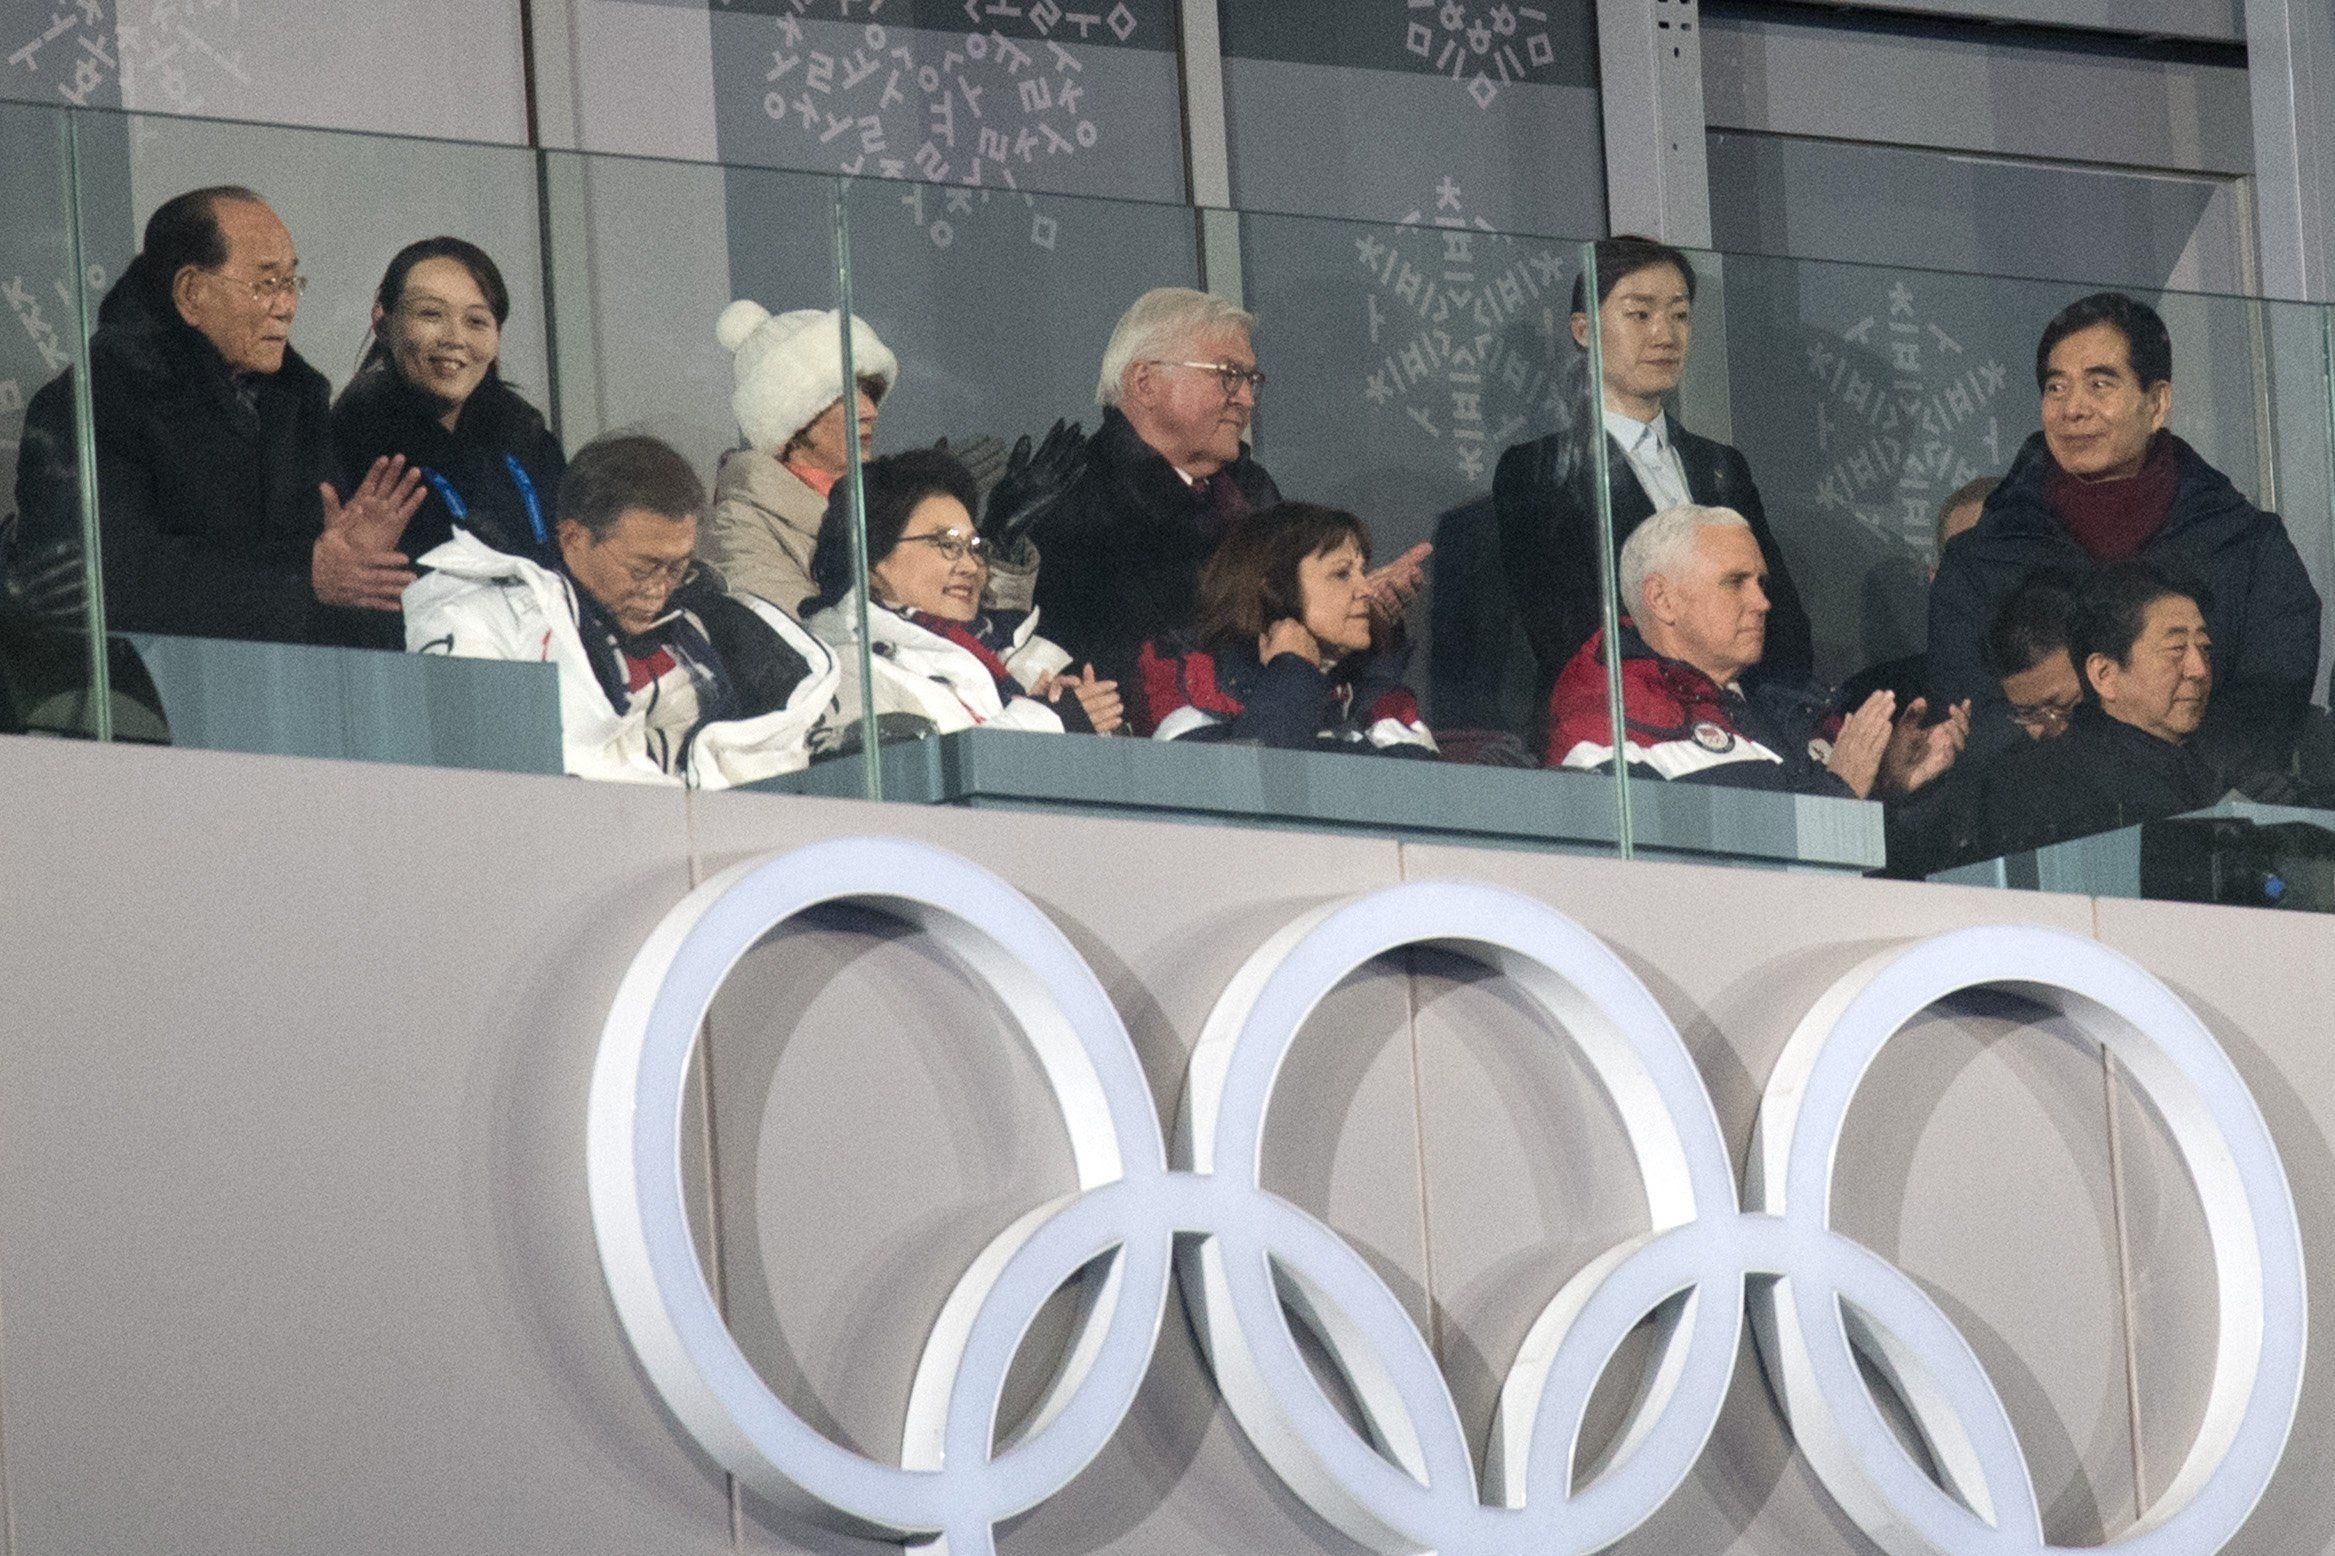 US, Olympic officials seeking to ensure peace with North Korea during games